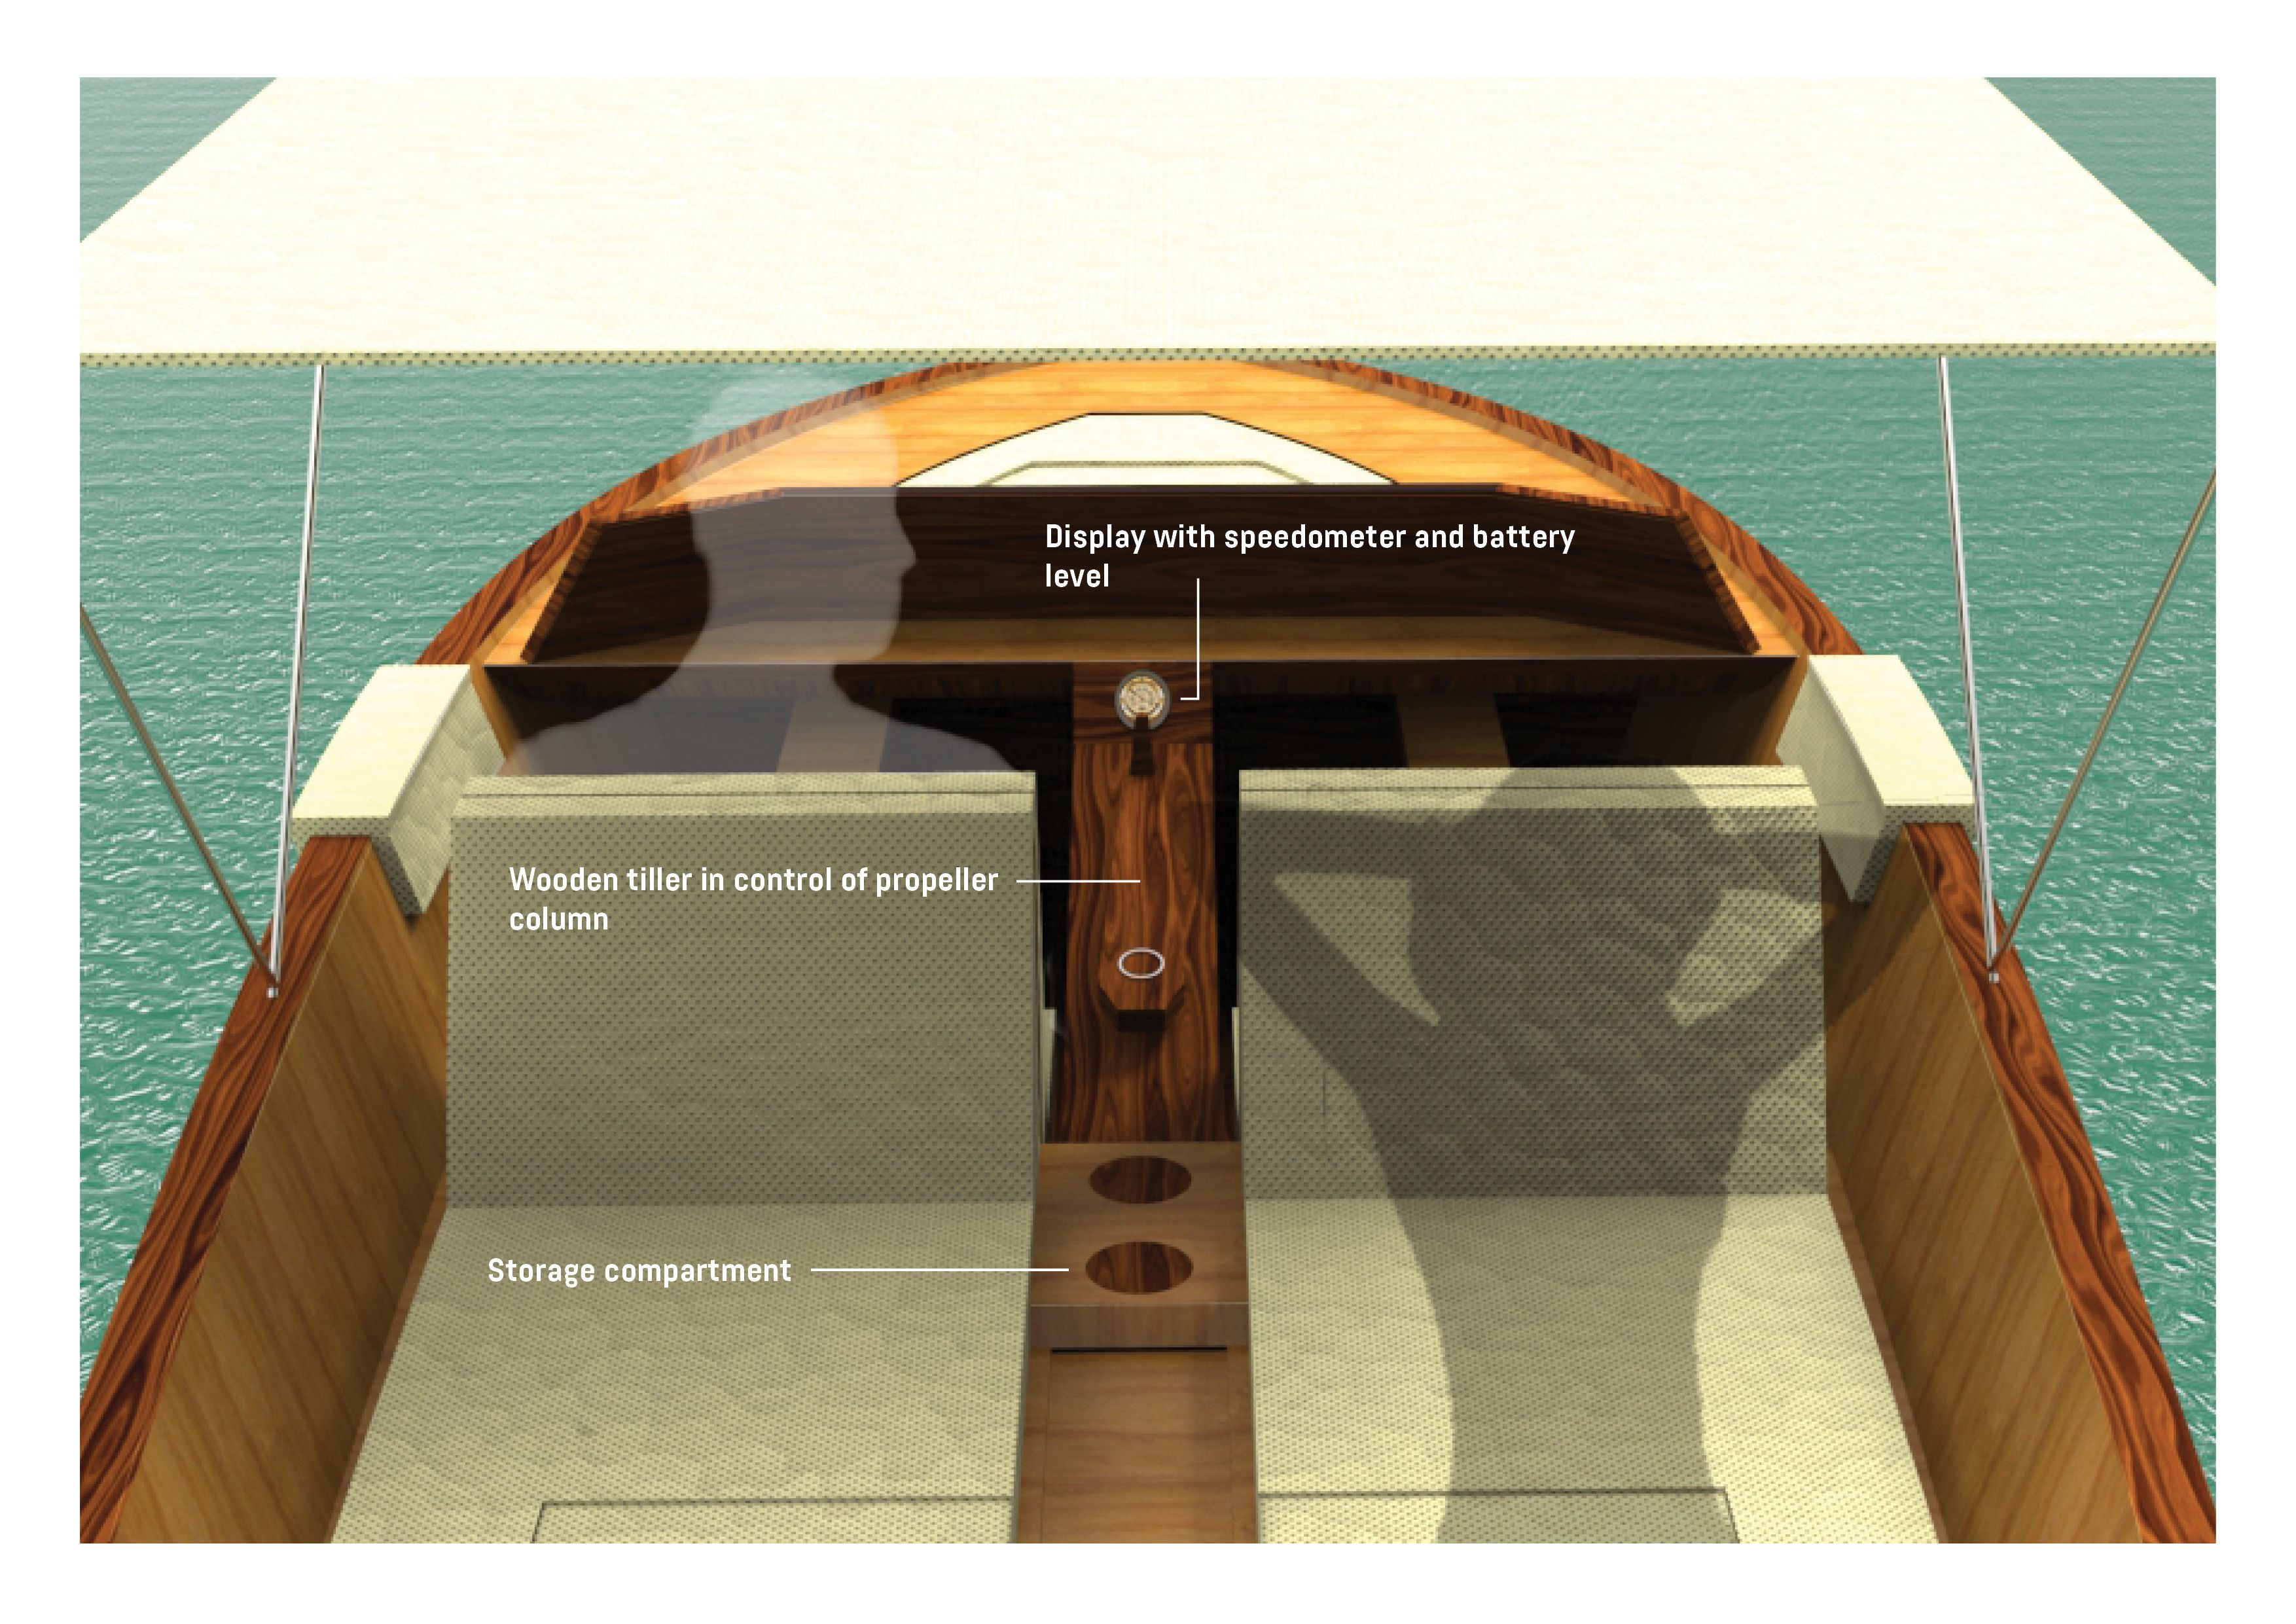 Tremezzina is a luxurious pedal-assisted boat concept. The name is a tribute to the renowned tourist resort nestled along the shores of Lake Como. Designed by: Giovanniedoardo Chiesa #cardesignfuture #formtrends #lakecomo #pedalboat #concept #emobility #paddleboat #tremezzinaconcept #sustainabletransportation #tremezzina #transportationdesign #luxury #ecruiser #personaltransportationtrends #ebike #paddleboat #cardesignnews